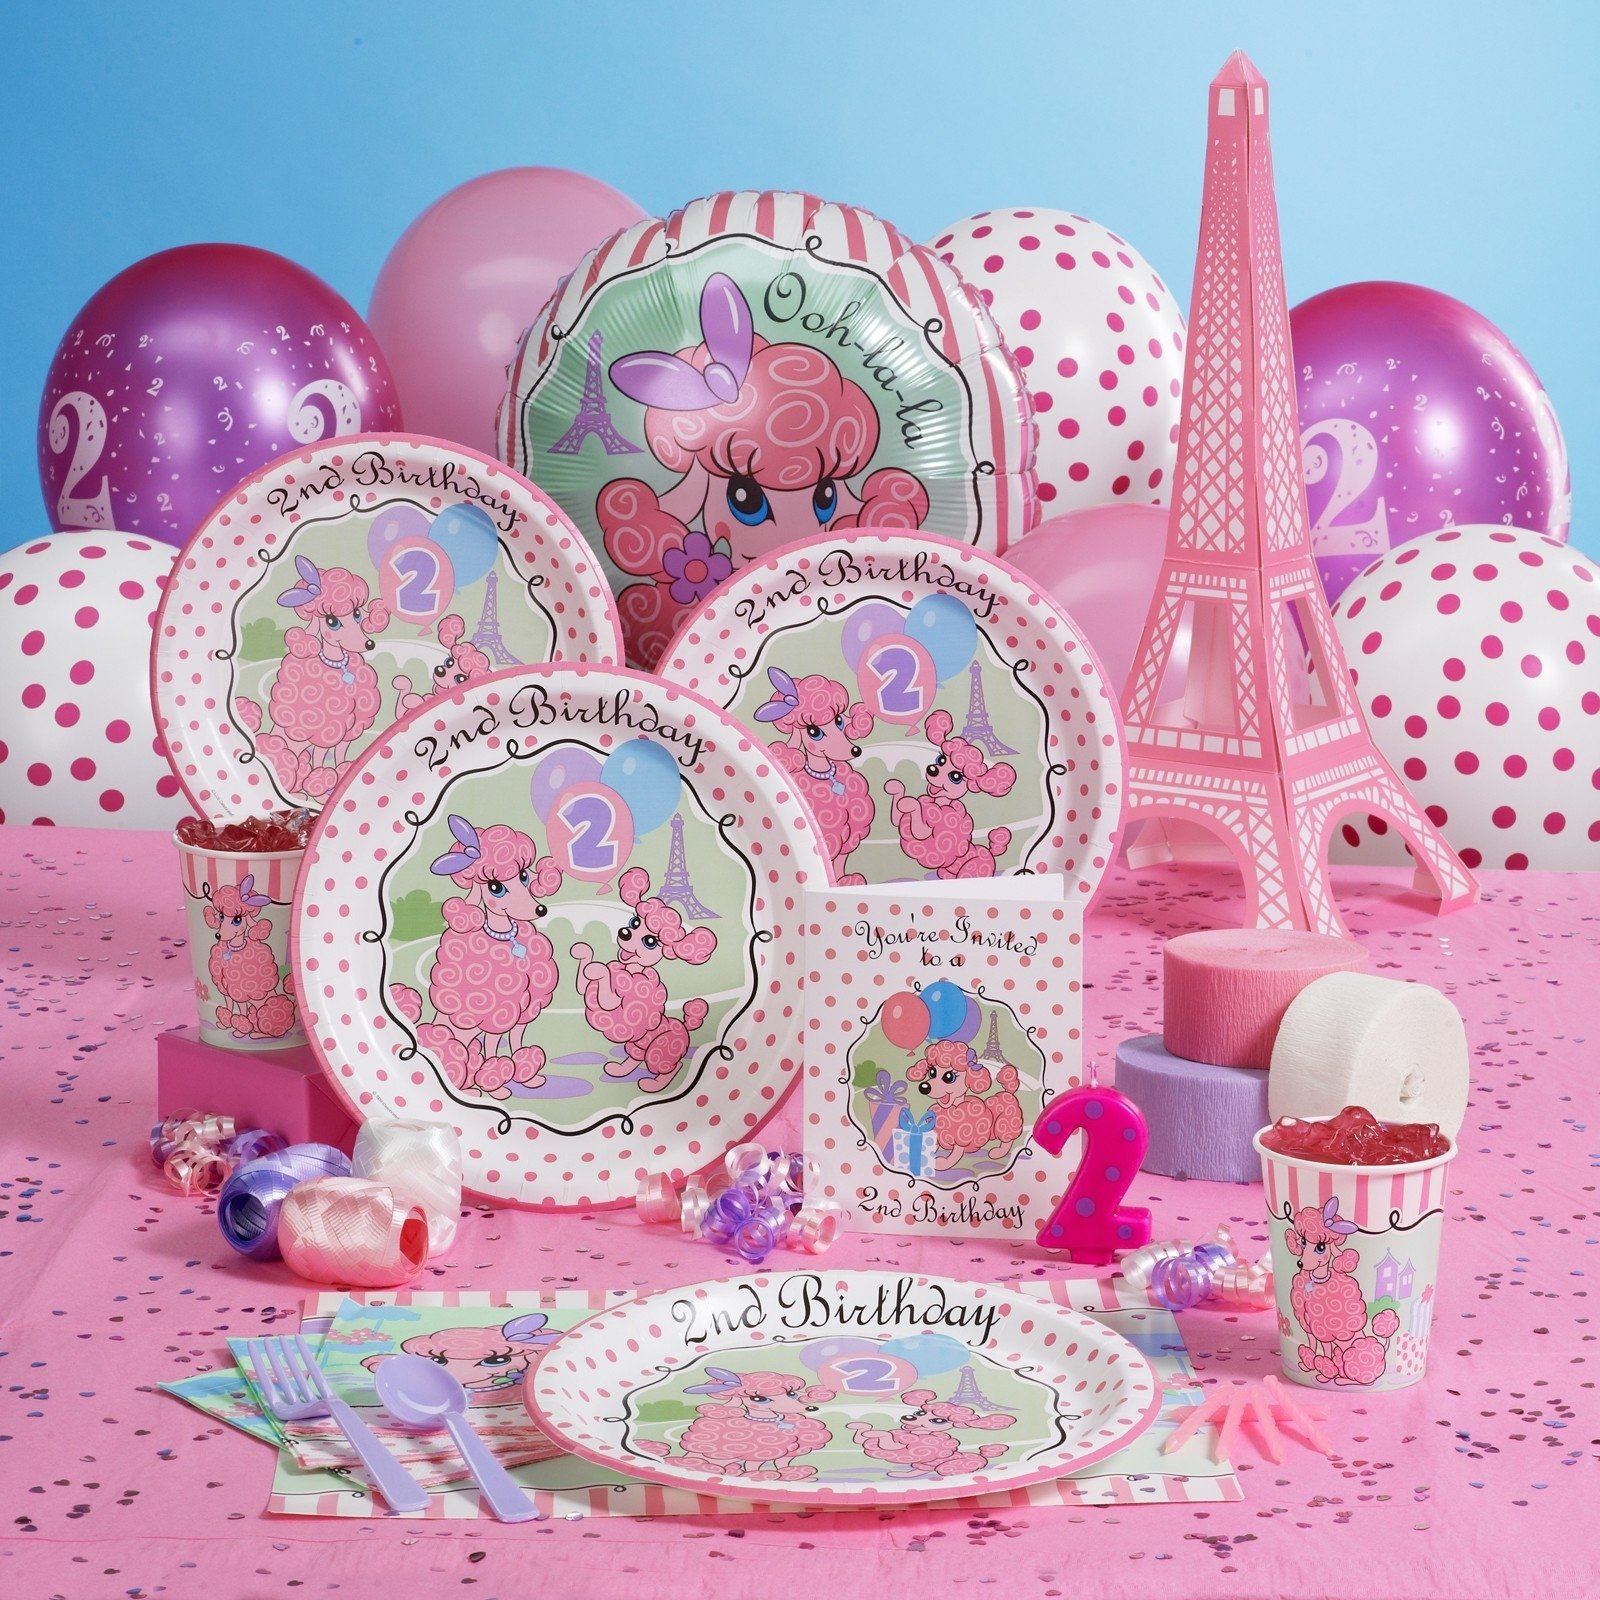 10 Stylish 4 Year Old Little Girl Birthday Party Ideas littlegirlbirthdaypartyideas unexpectedly expecting baby 4 2020